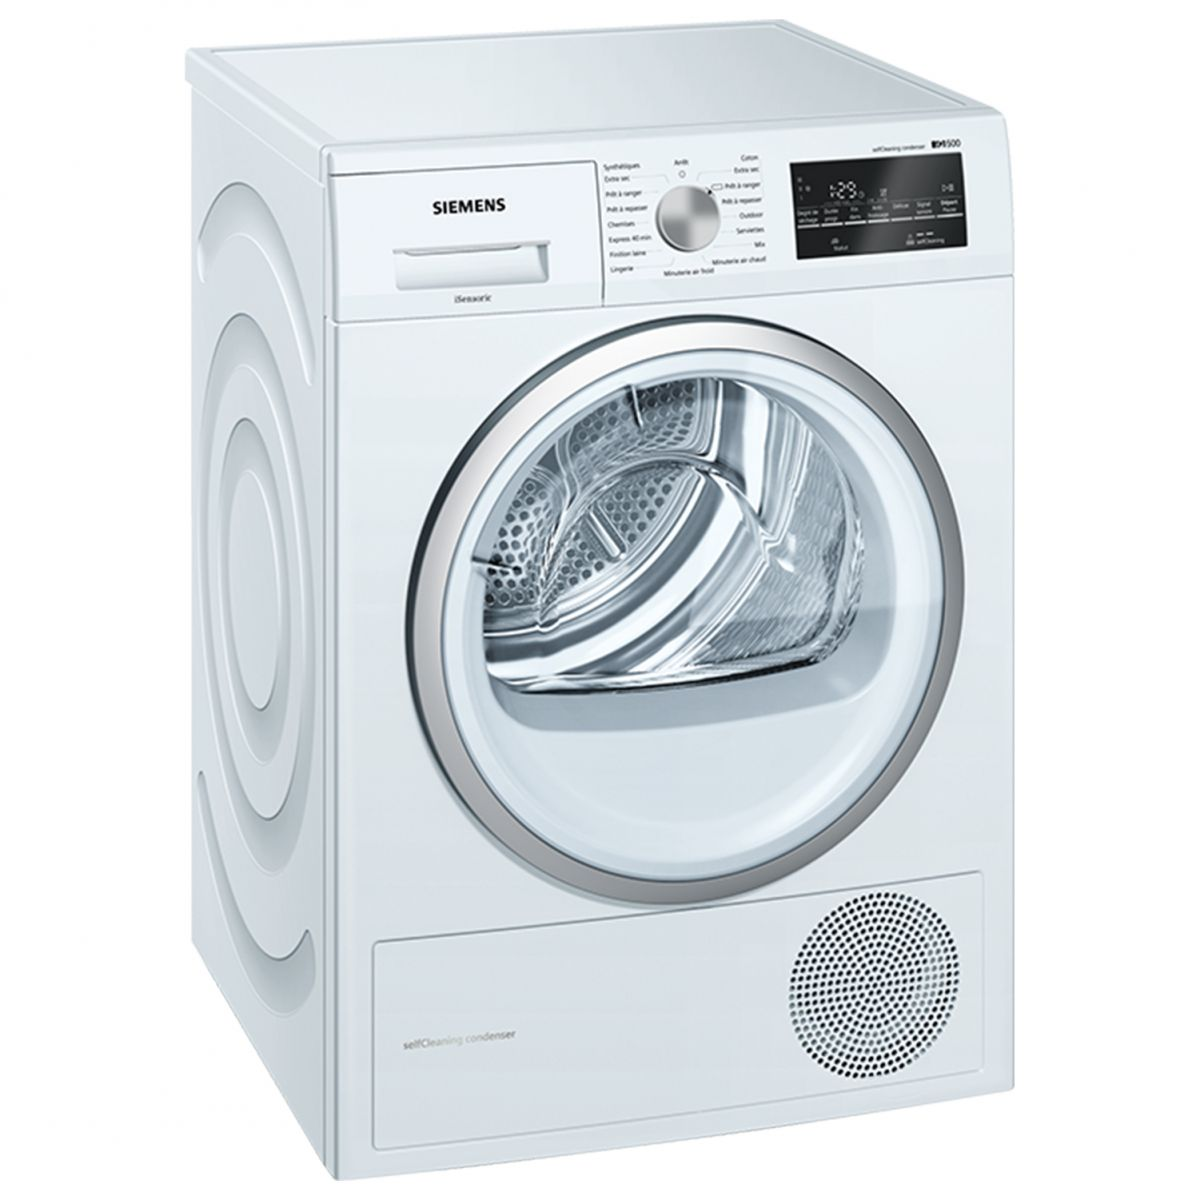 siemens seche linge hublot pompe a chaleur 8kg a tambour. Black Bedroom Furniture Sets. Home Design Ideas